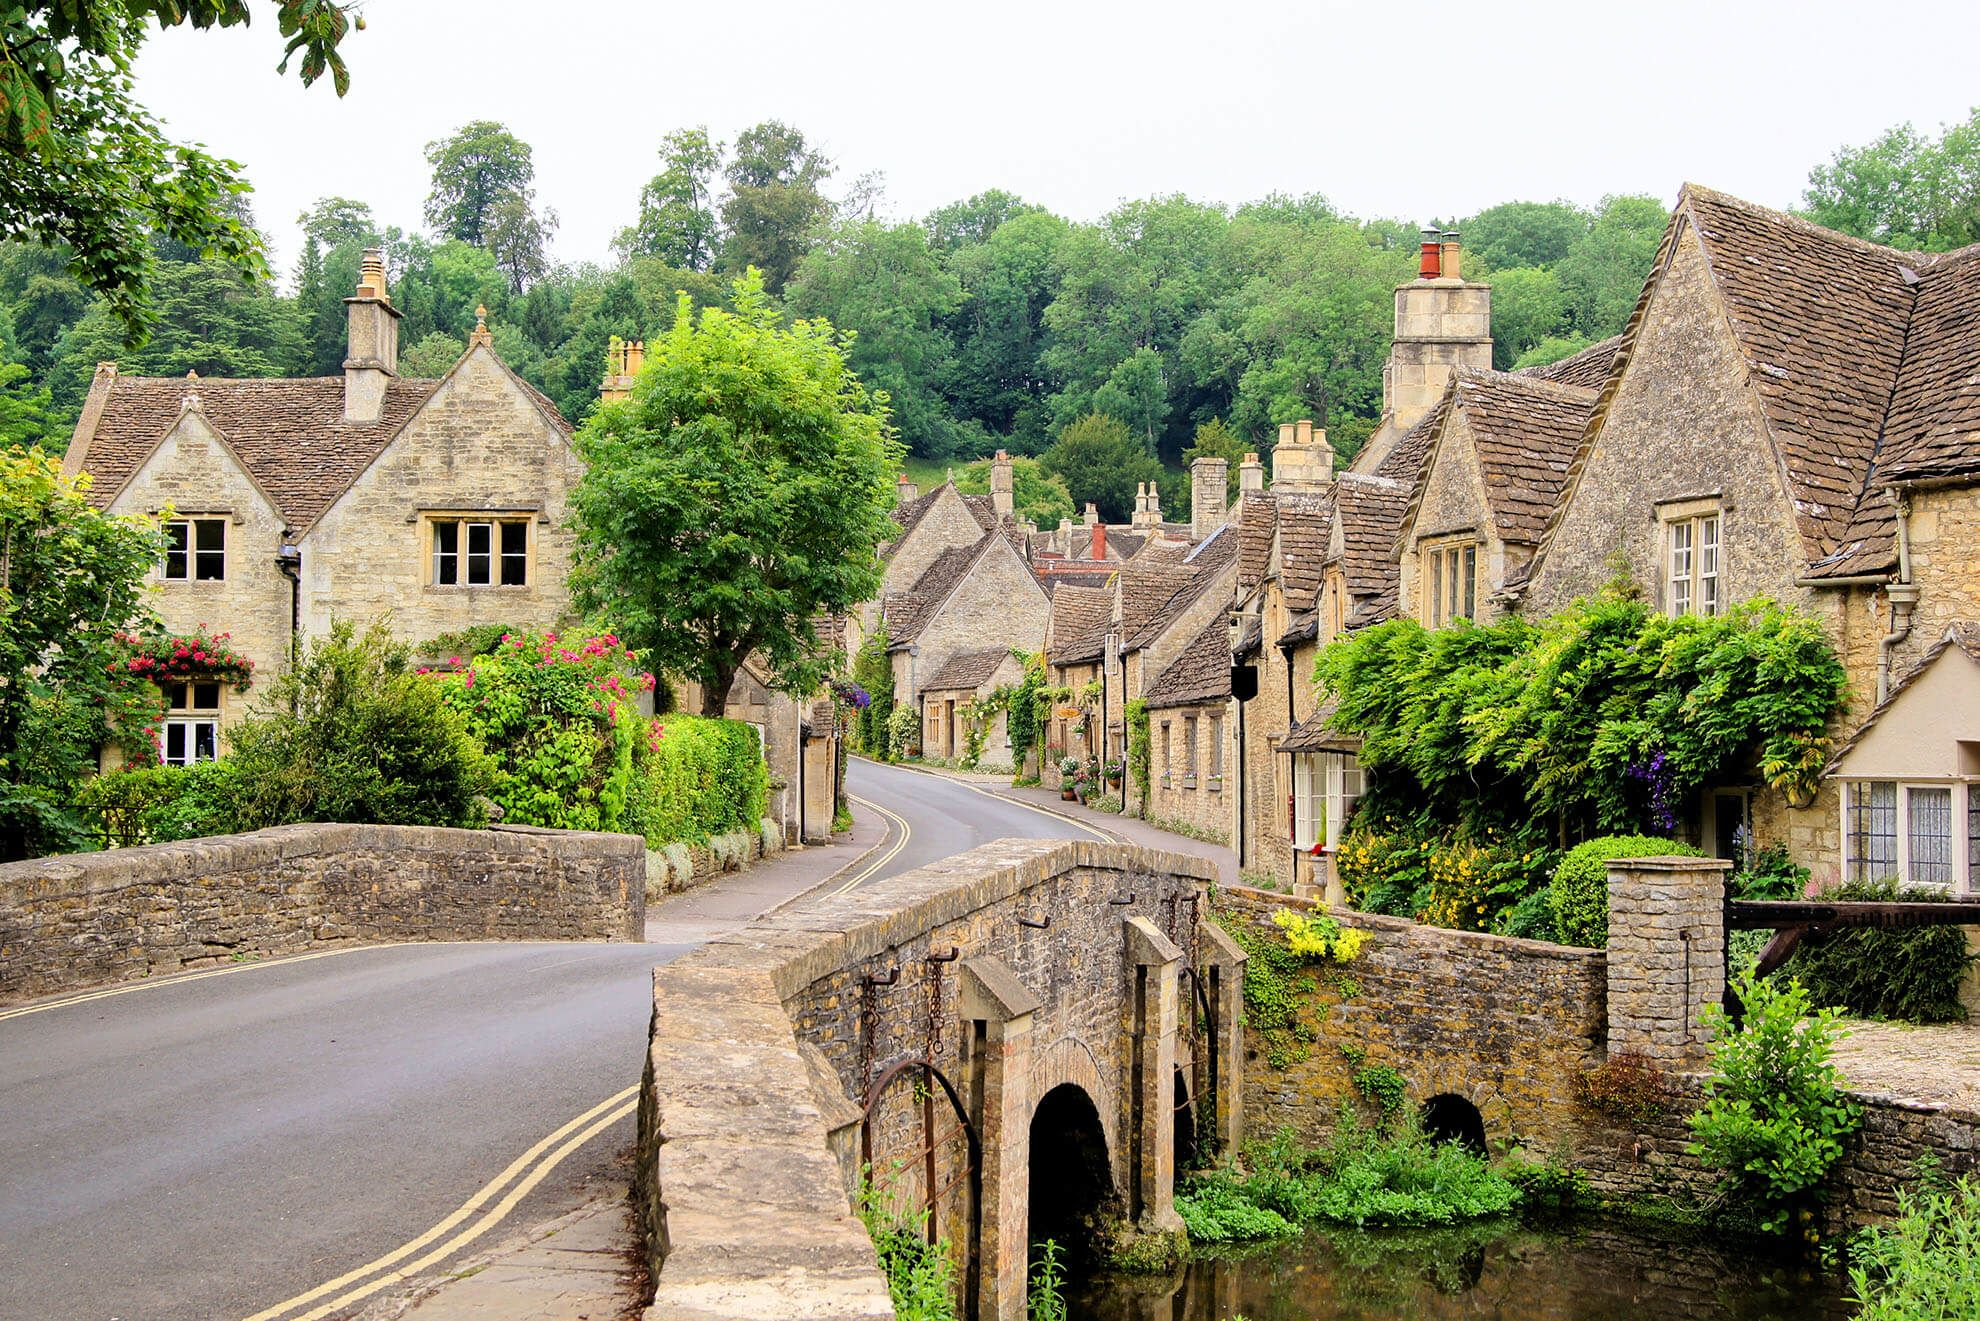 Castle Combe, called 'The Prettiest Village in England'